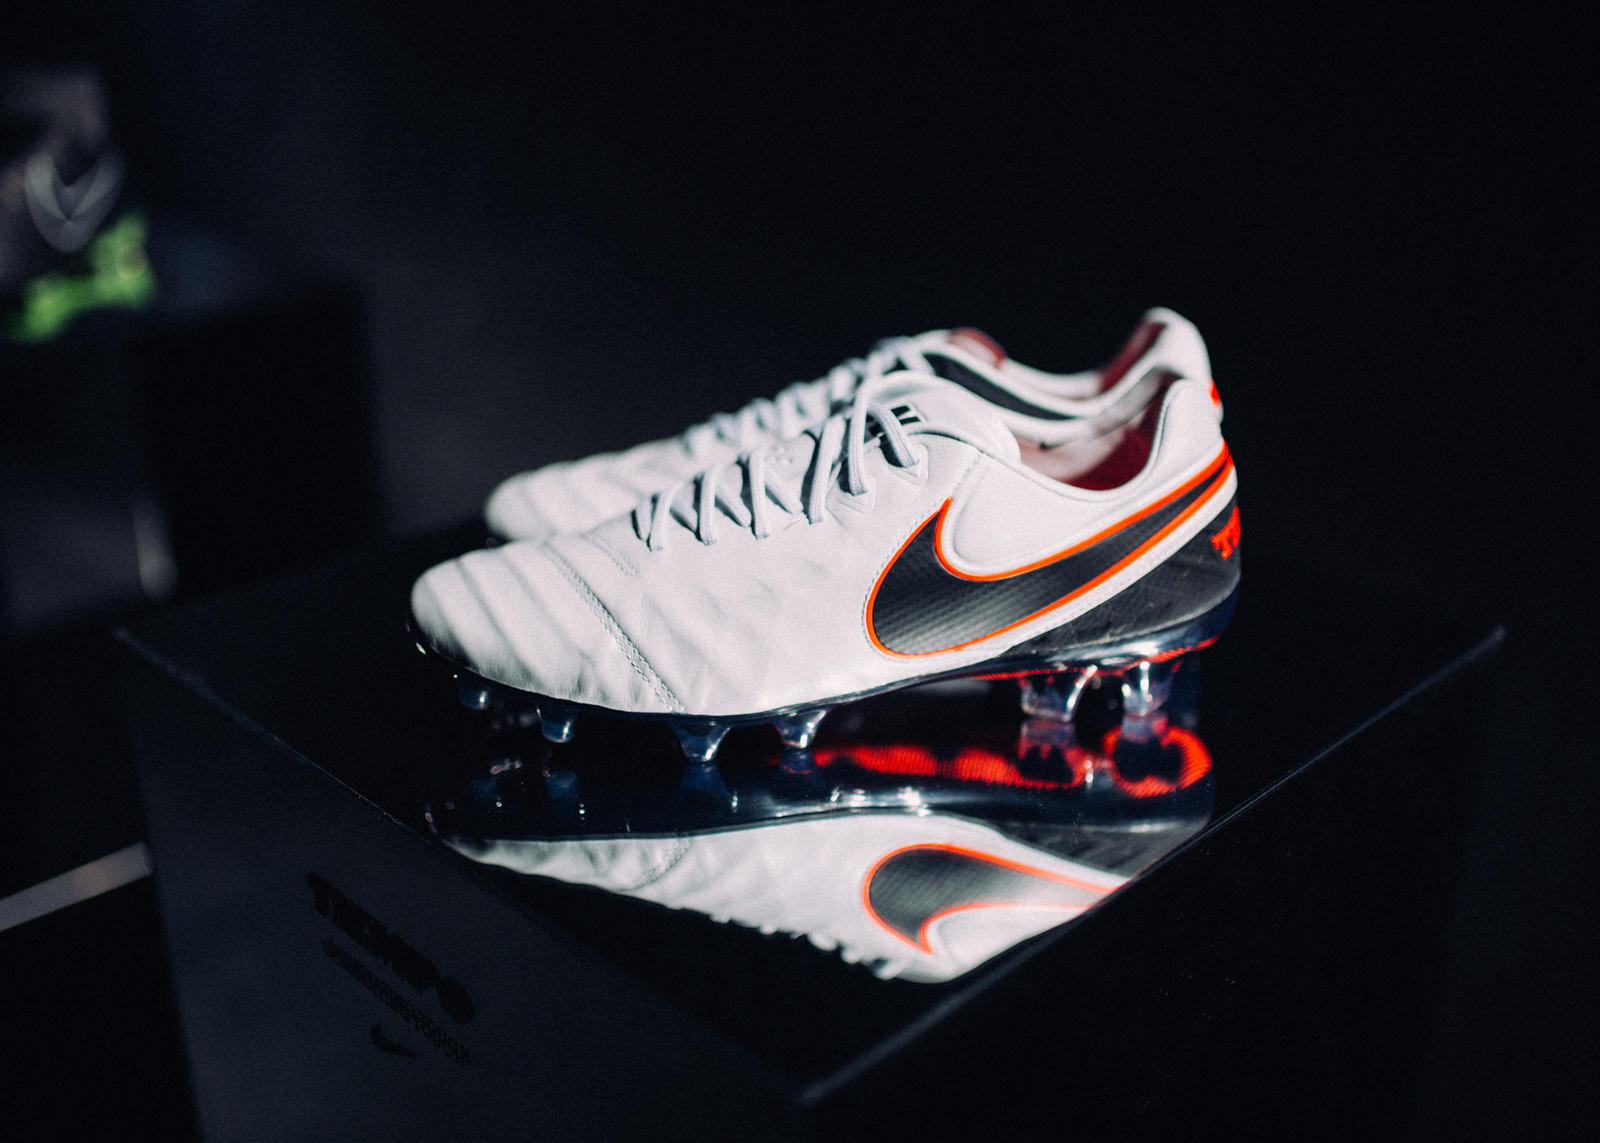 """the best attitude ae7b9 e4ffc ... as if made of metal — but comes to life in motion,"""" Nike Football Color  Lead Emma Jobe explains while describing Nike Footballs Liquid Chrome Pack."""